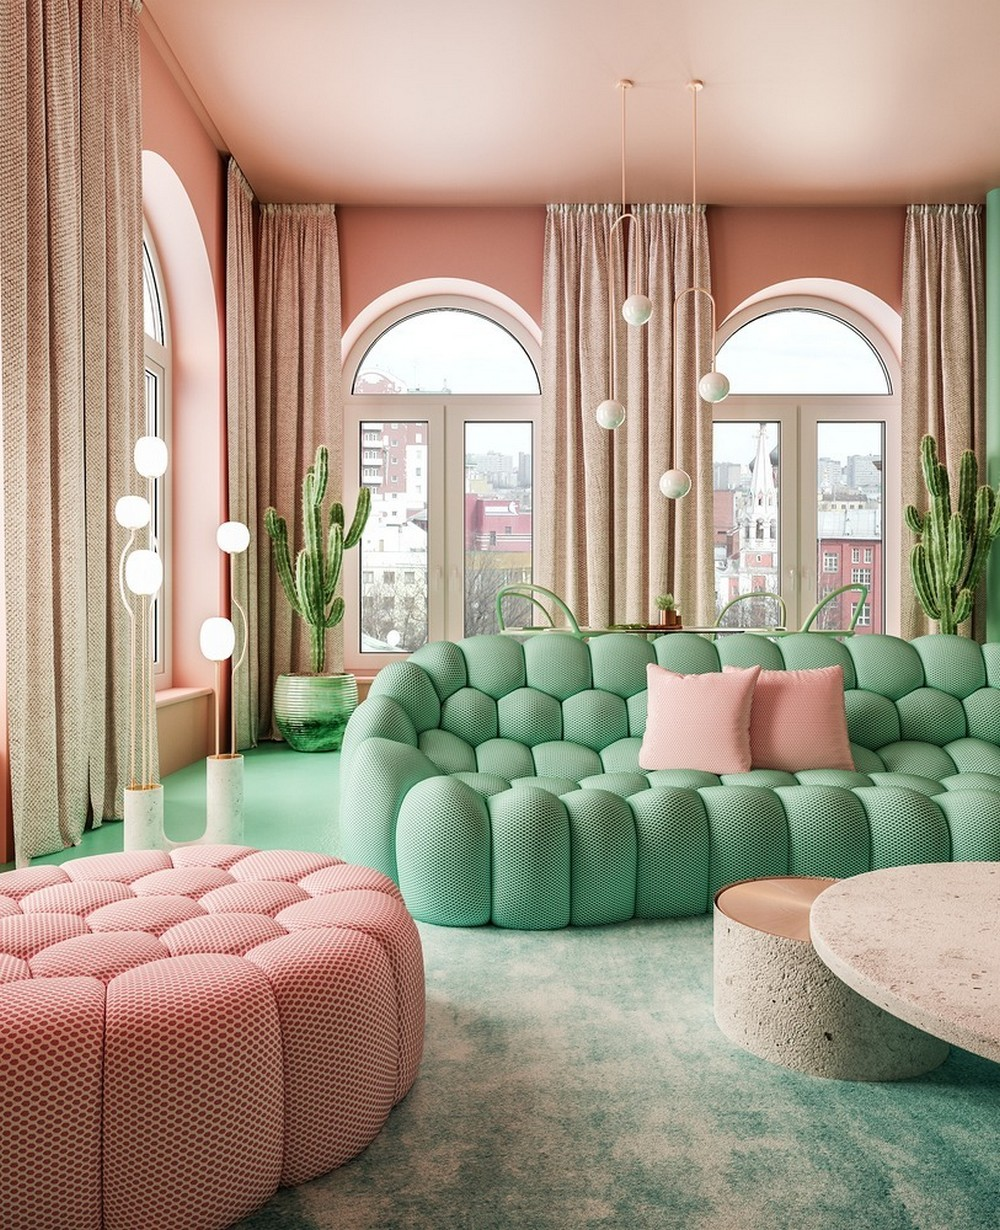 6 Design Trends that Will Be In Style for the Foreseeable Future 6 design trends 6 Design Trends that Will Be In Style for the Foreseeable Future 6 Design Trends that Will Be In Style for the Foreseeable Future 6